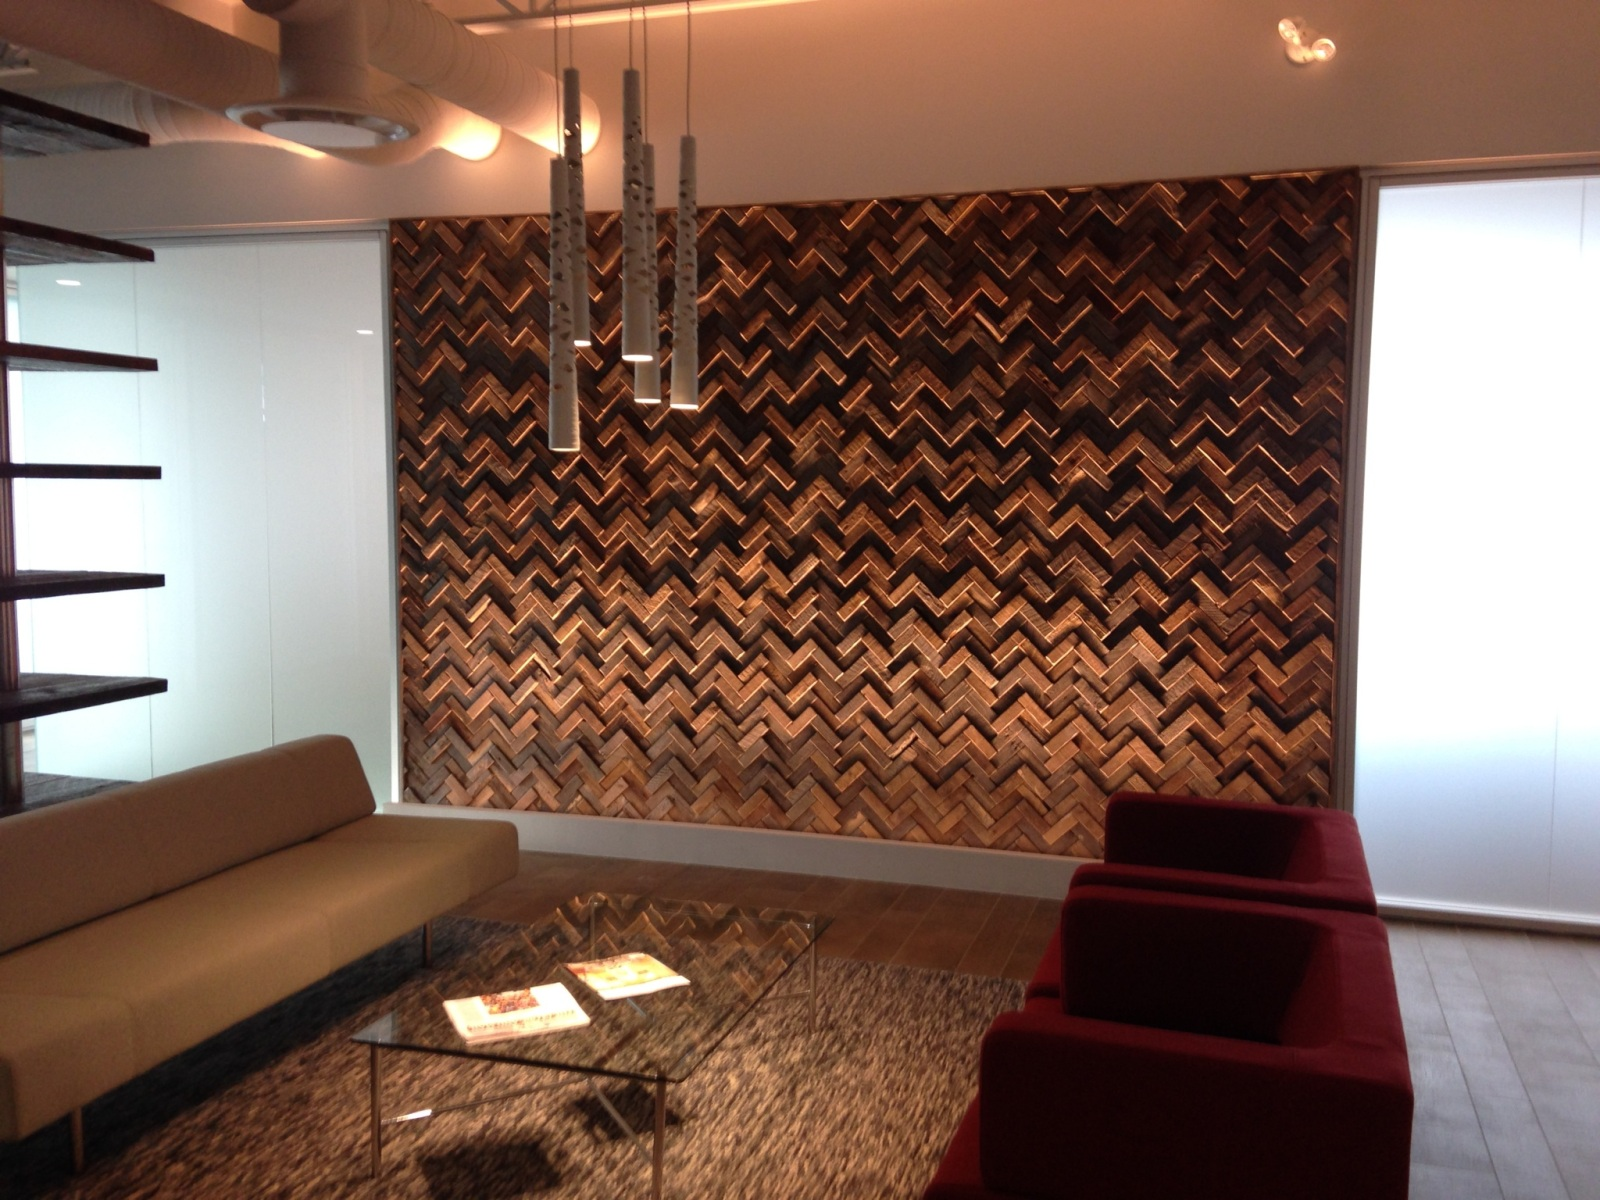 Wood Wall Covering Ideas - HomesFeed